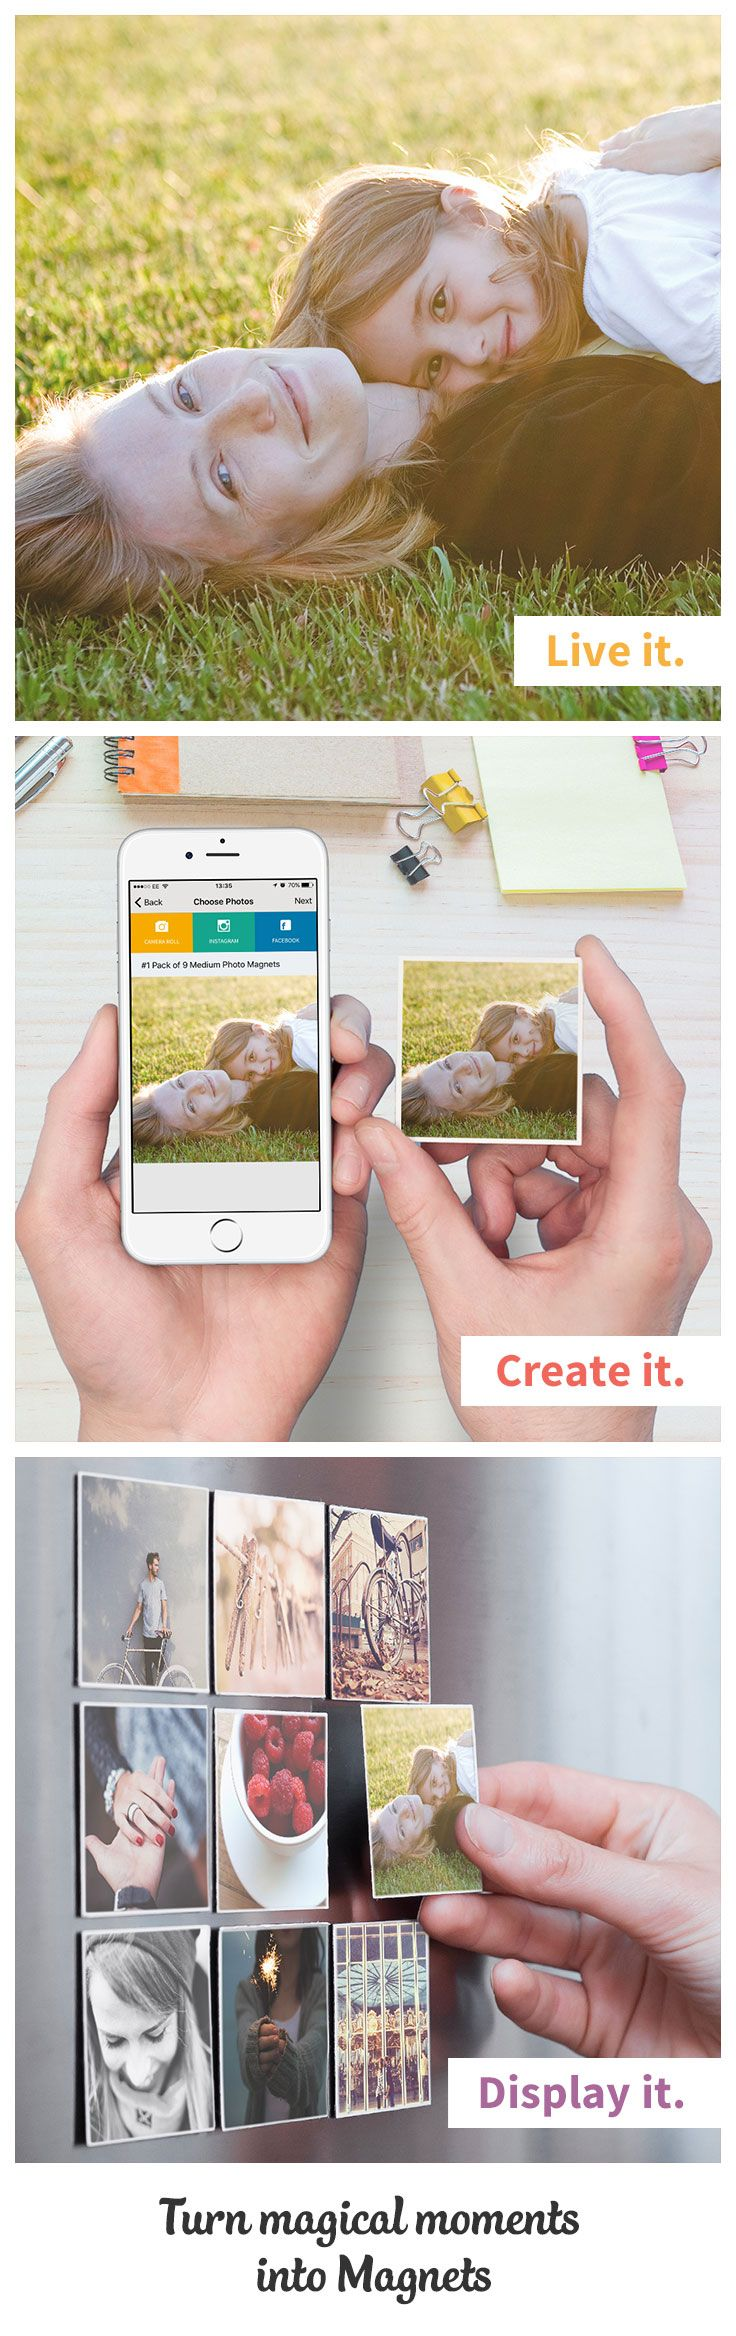 Do something different when decorating your home. Try turning your favourite photos into Magnets, Square Prints, or even a Poster. Filling your home with magical moments is easy with the Sticky9 App. Go on, try it and be creative. Who knows where your photos will end up. You'll also be able to enjoy 20% off + Free shipping on your first order.